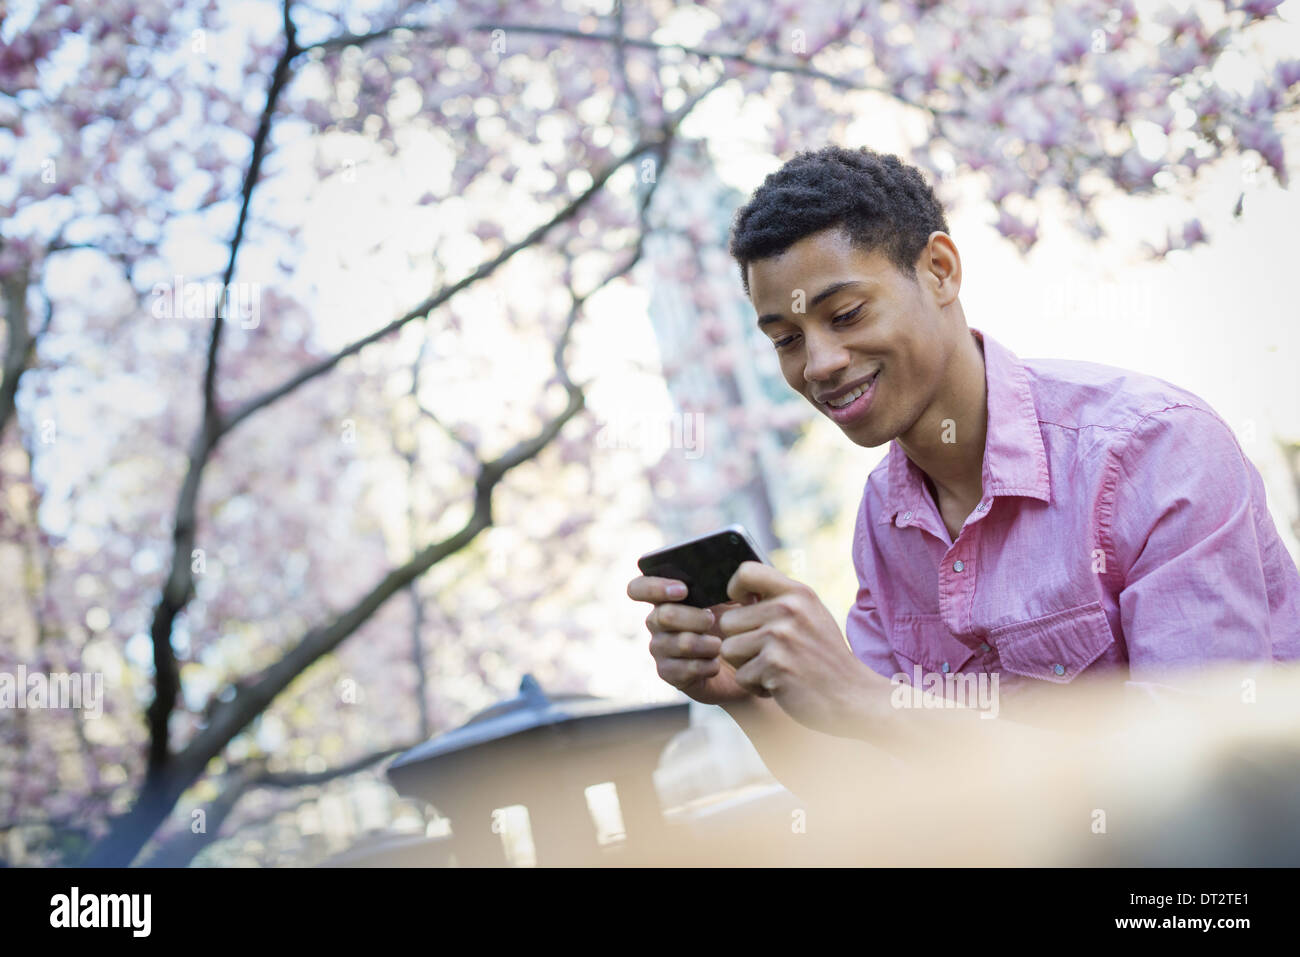 A young man in the park in spring using a mobile phone - Stock Image